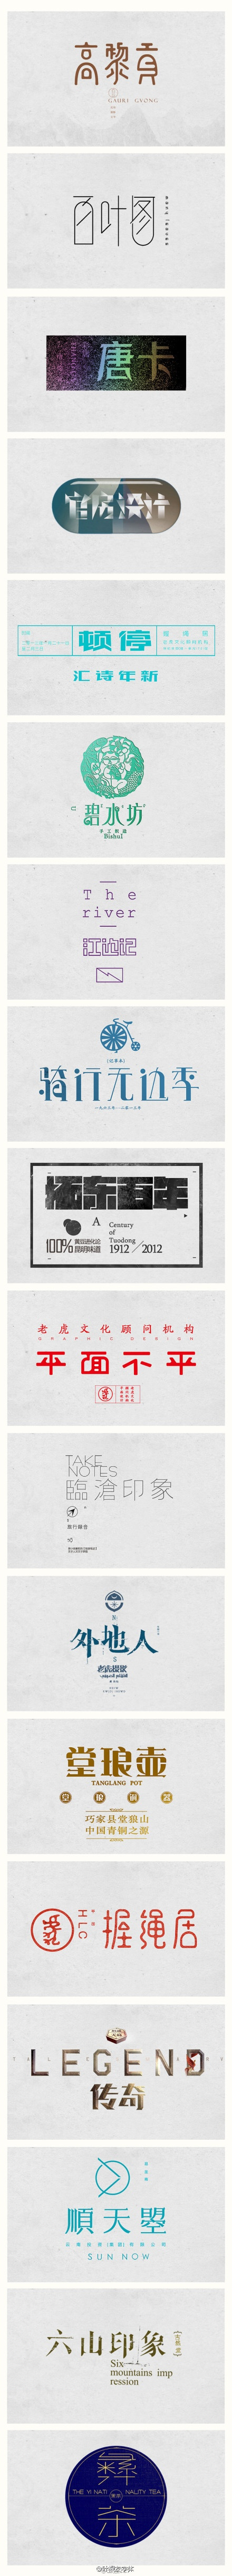 china/HK/font design